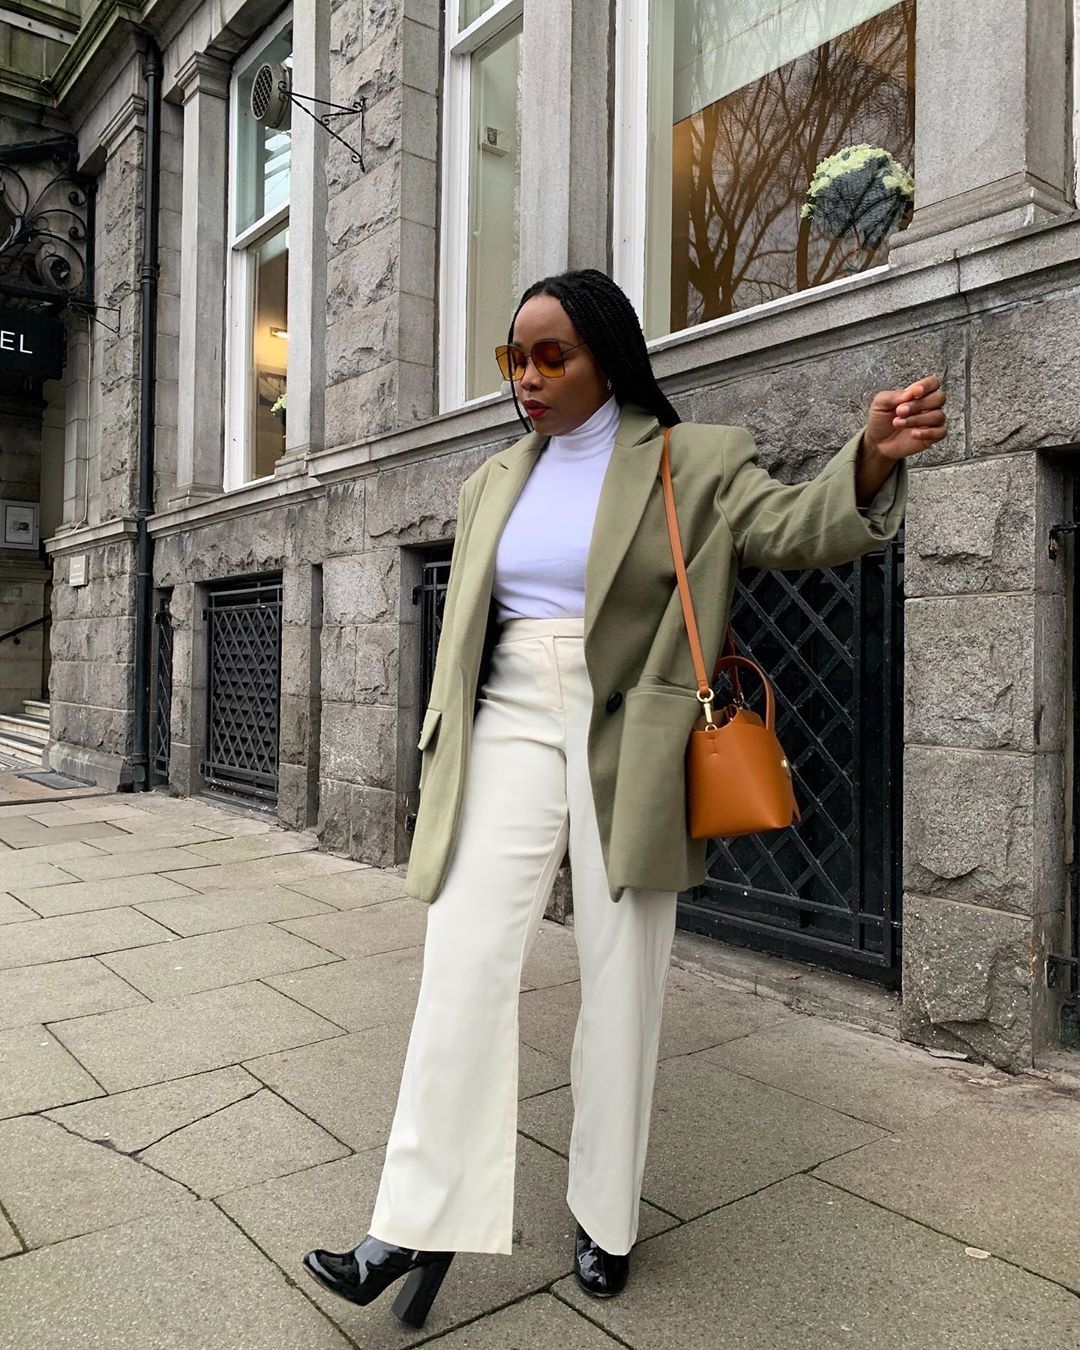 8 Wide-Leg Pant Outfits That Will Make You Want to Ditch Your Skinny Jeans ASAP 5